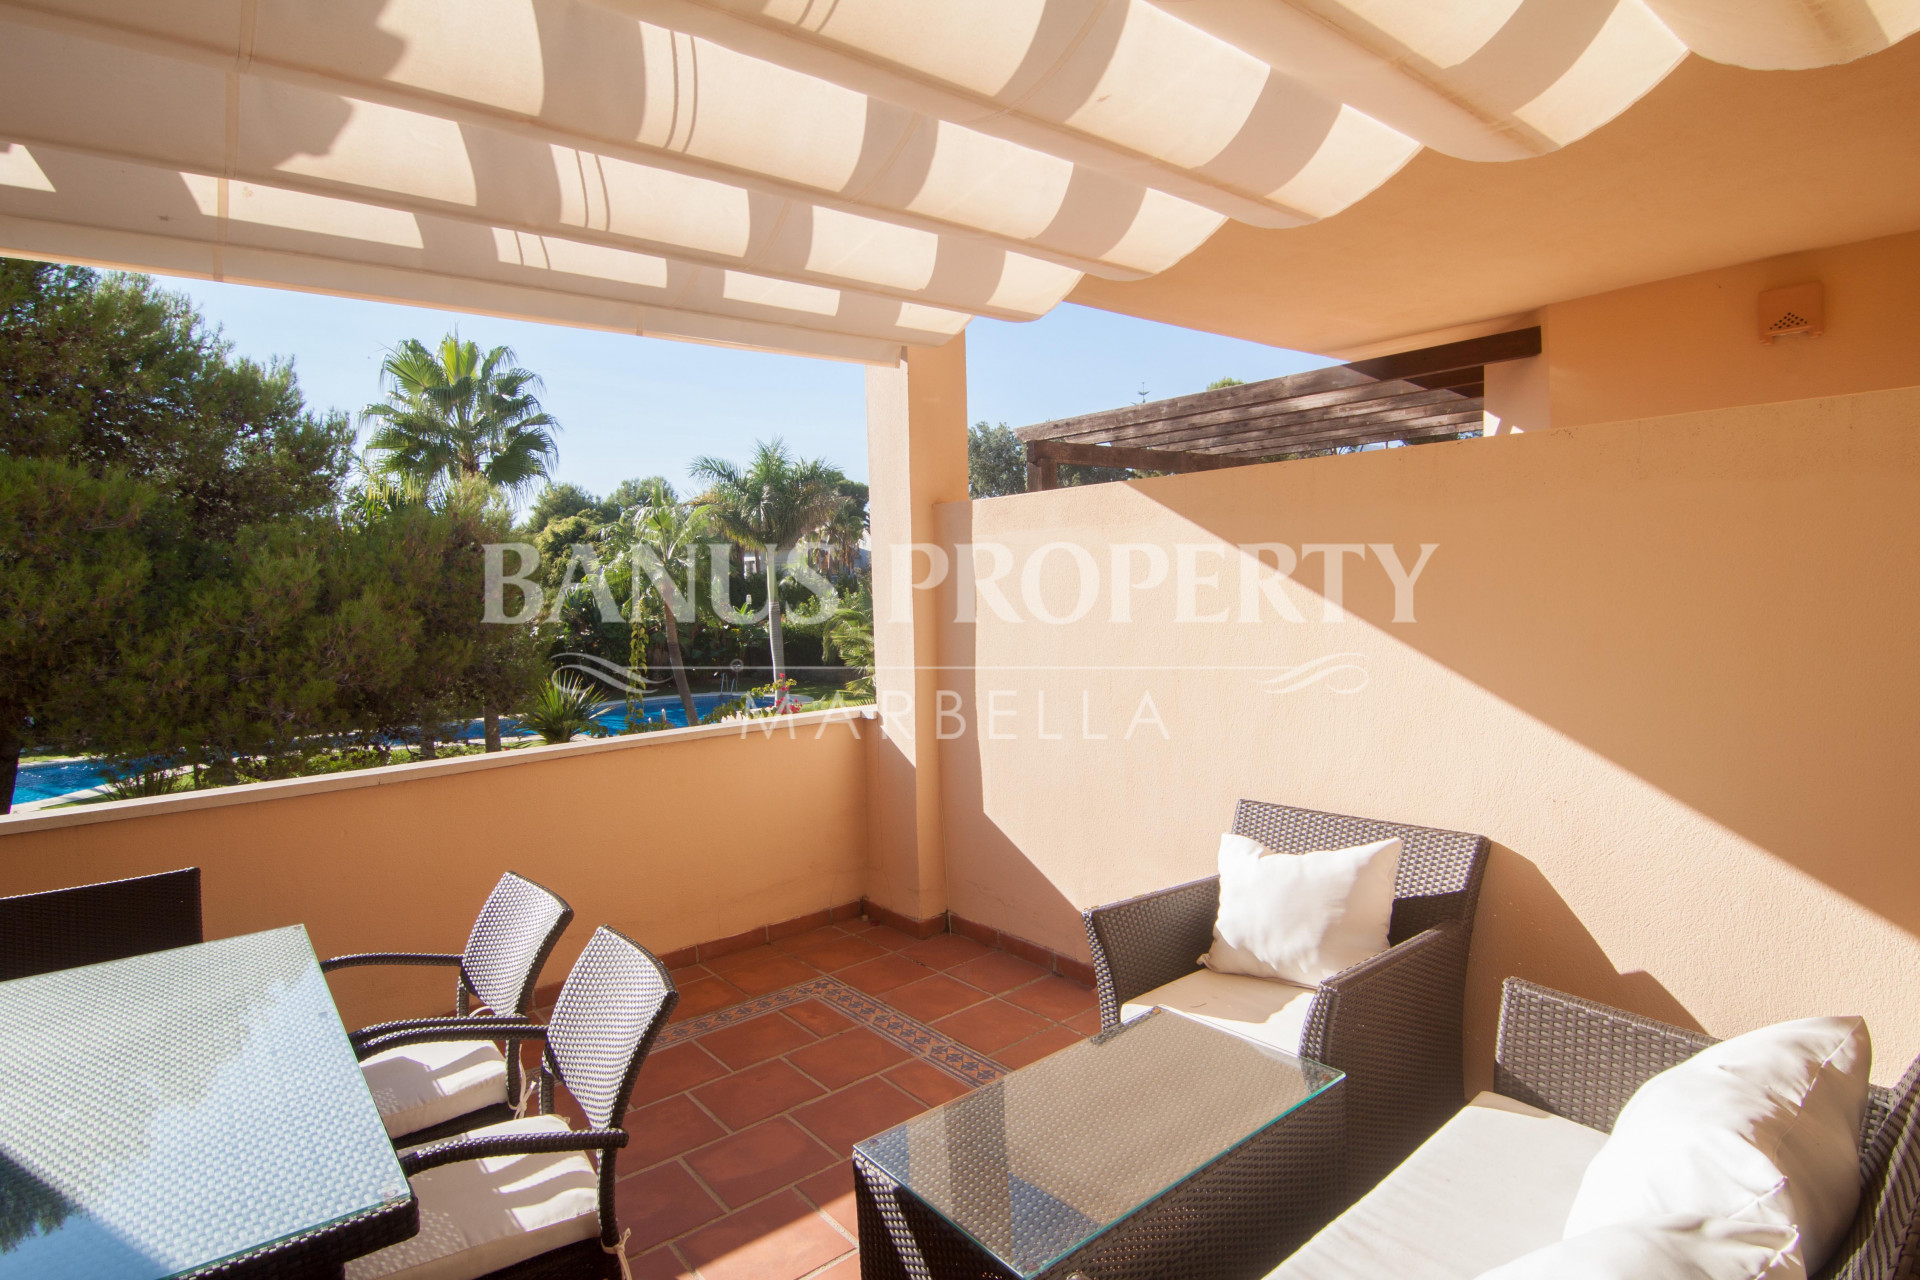 Charming two-bedroom second floor west facing apartment for sale in Las Mimosas, Puerto Banus